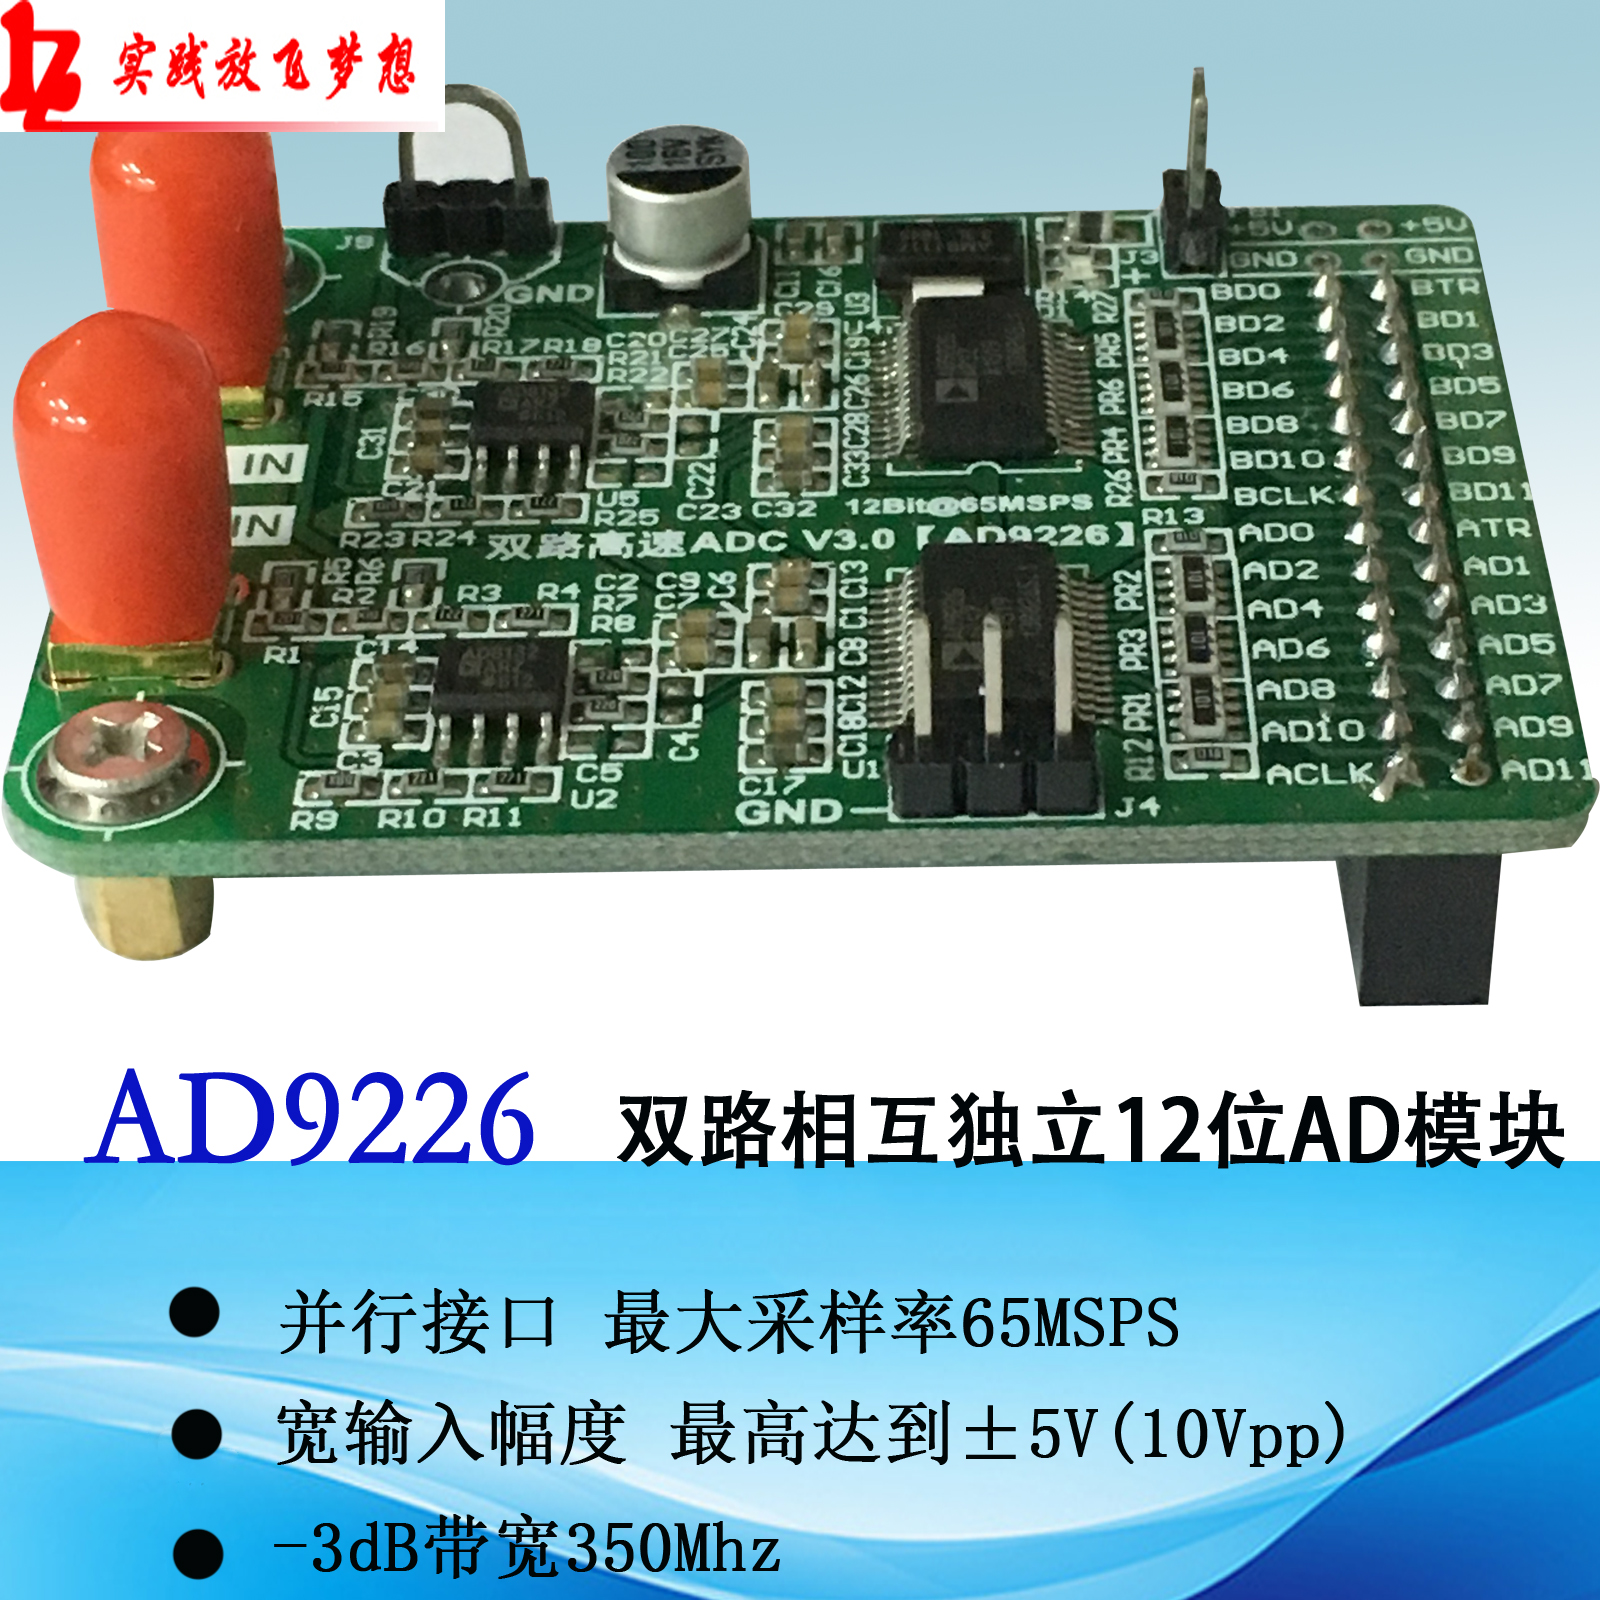 Dual channel high speed AD module AD9226 parallel 12 bit AD 65M data acquisition FPGA development board electronic system design fpga development board stm32f103vct6 development board high speed ad da comparator